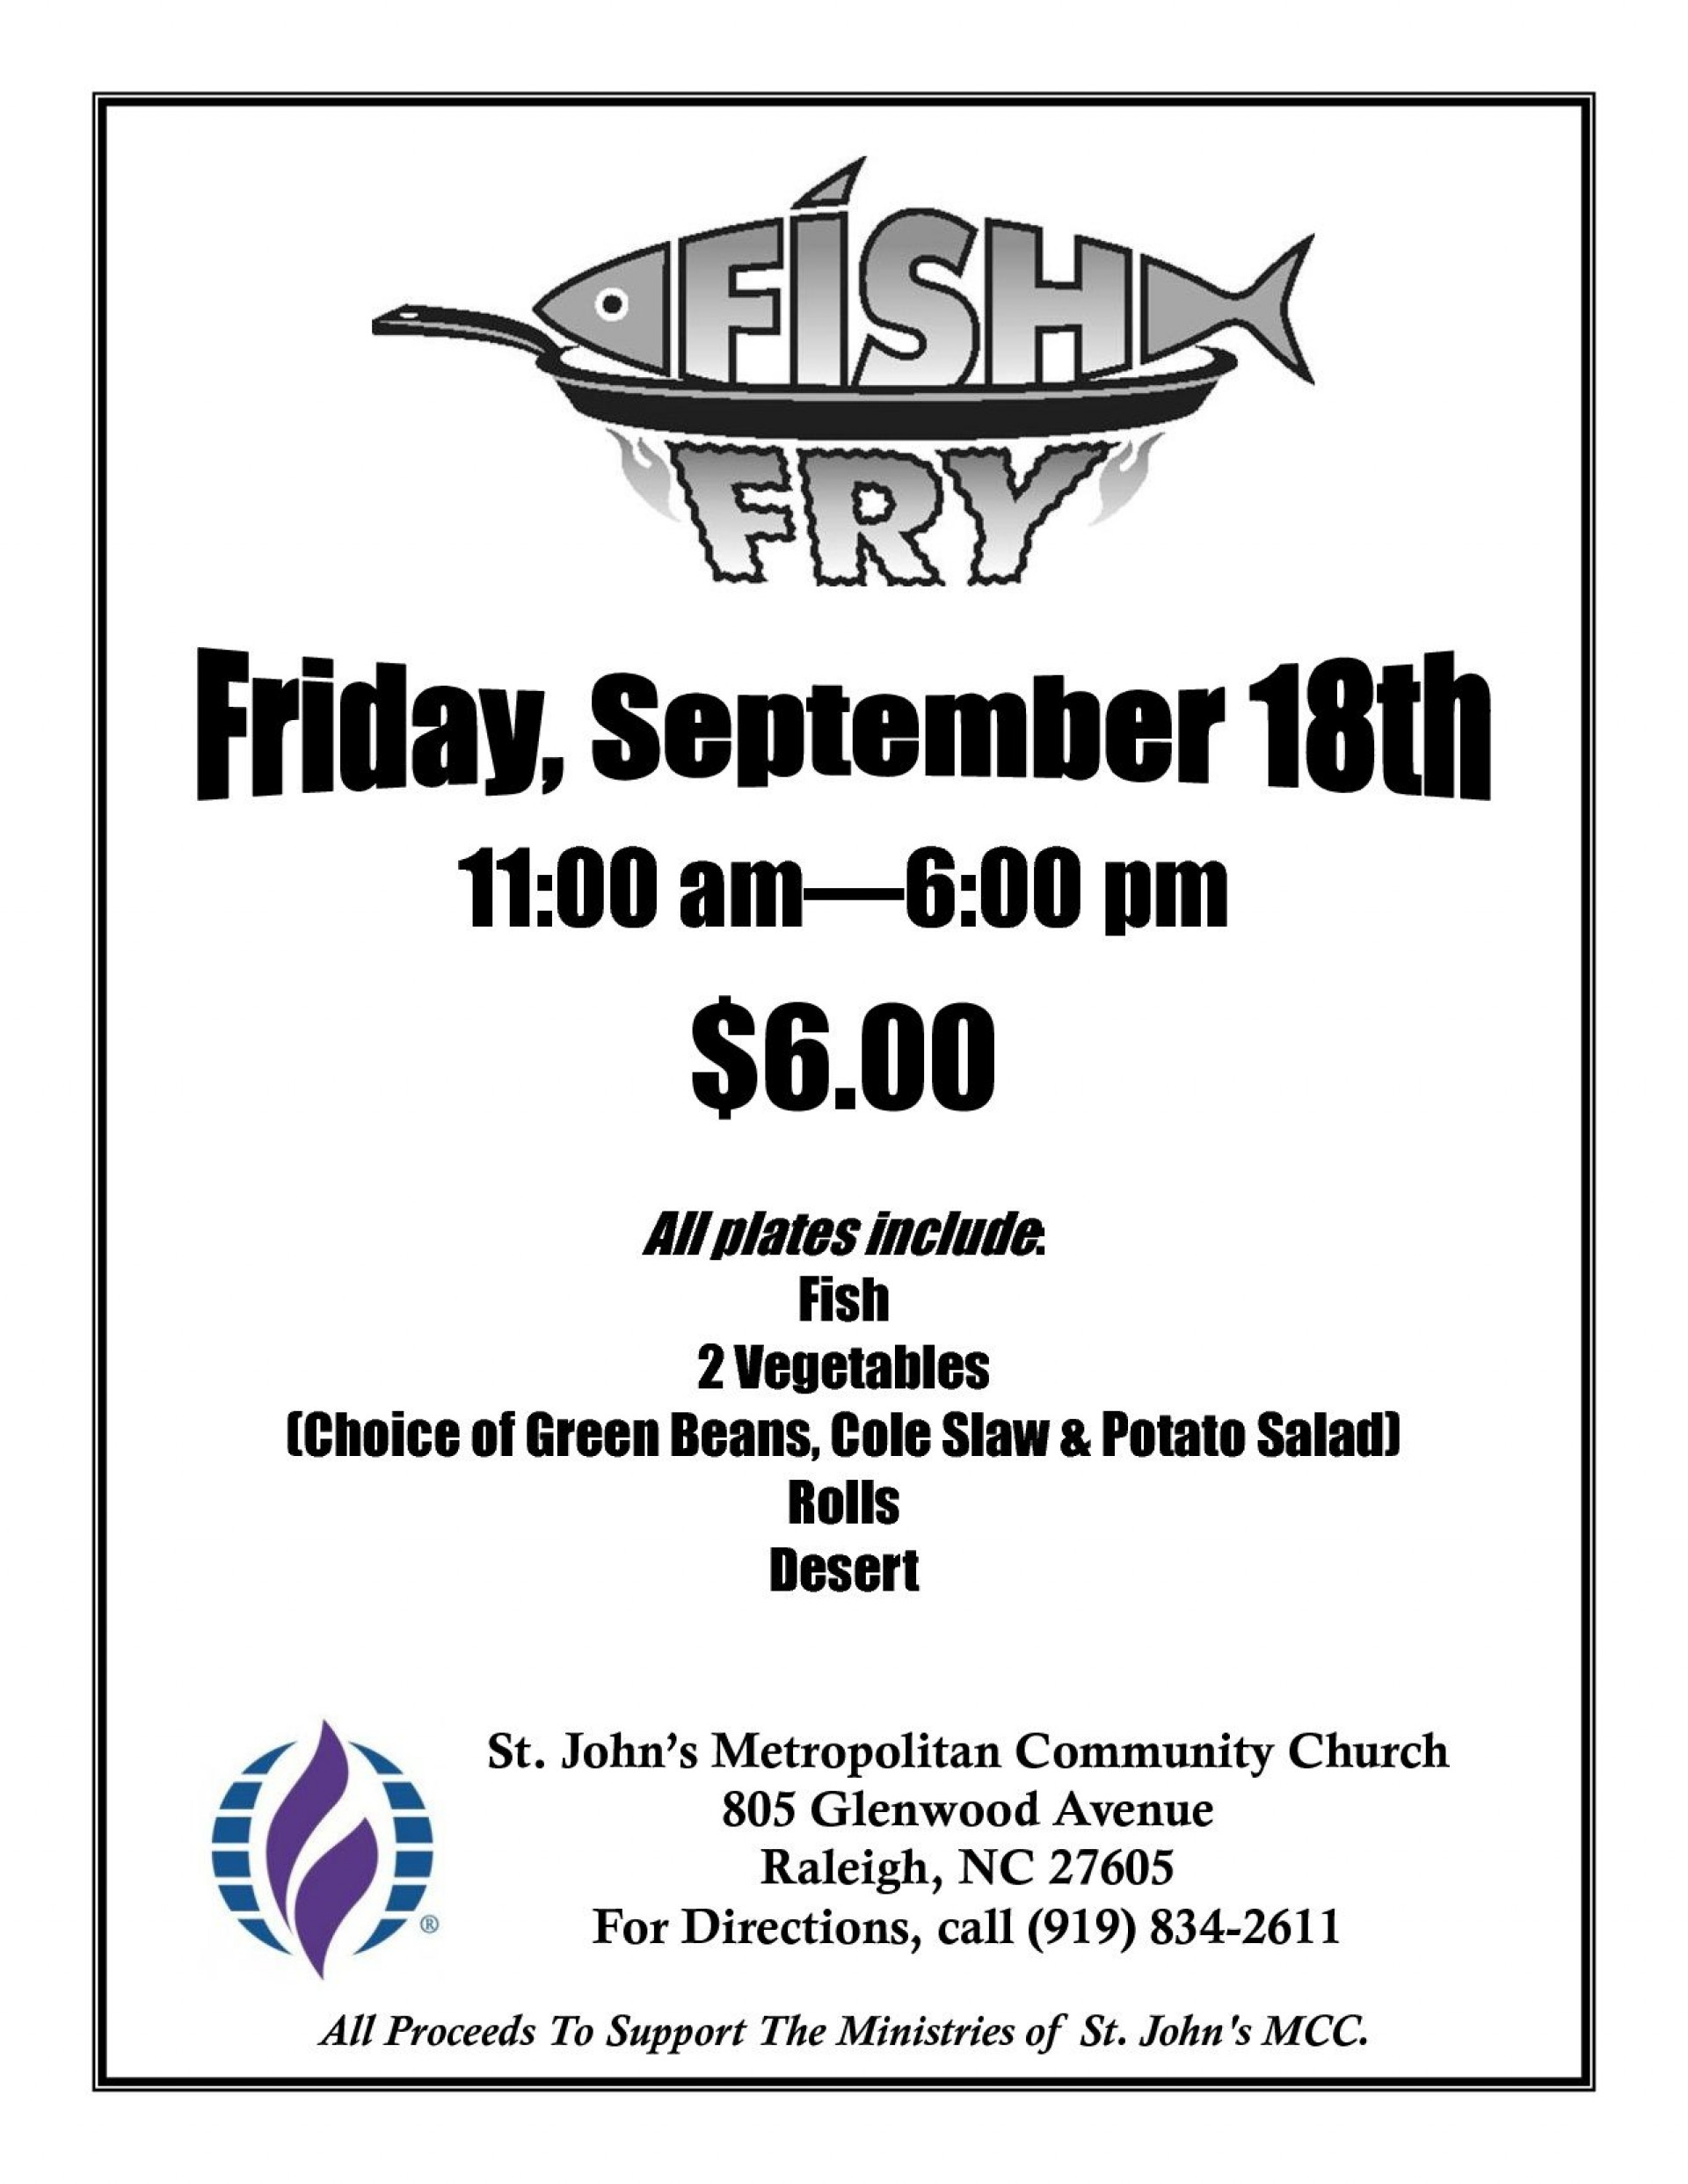 003 Awful Fish Fry Flyer Template Concept  Printable Free Powerpoint Psd1920